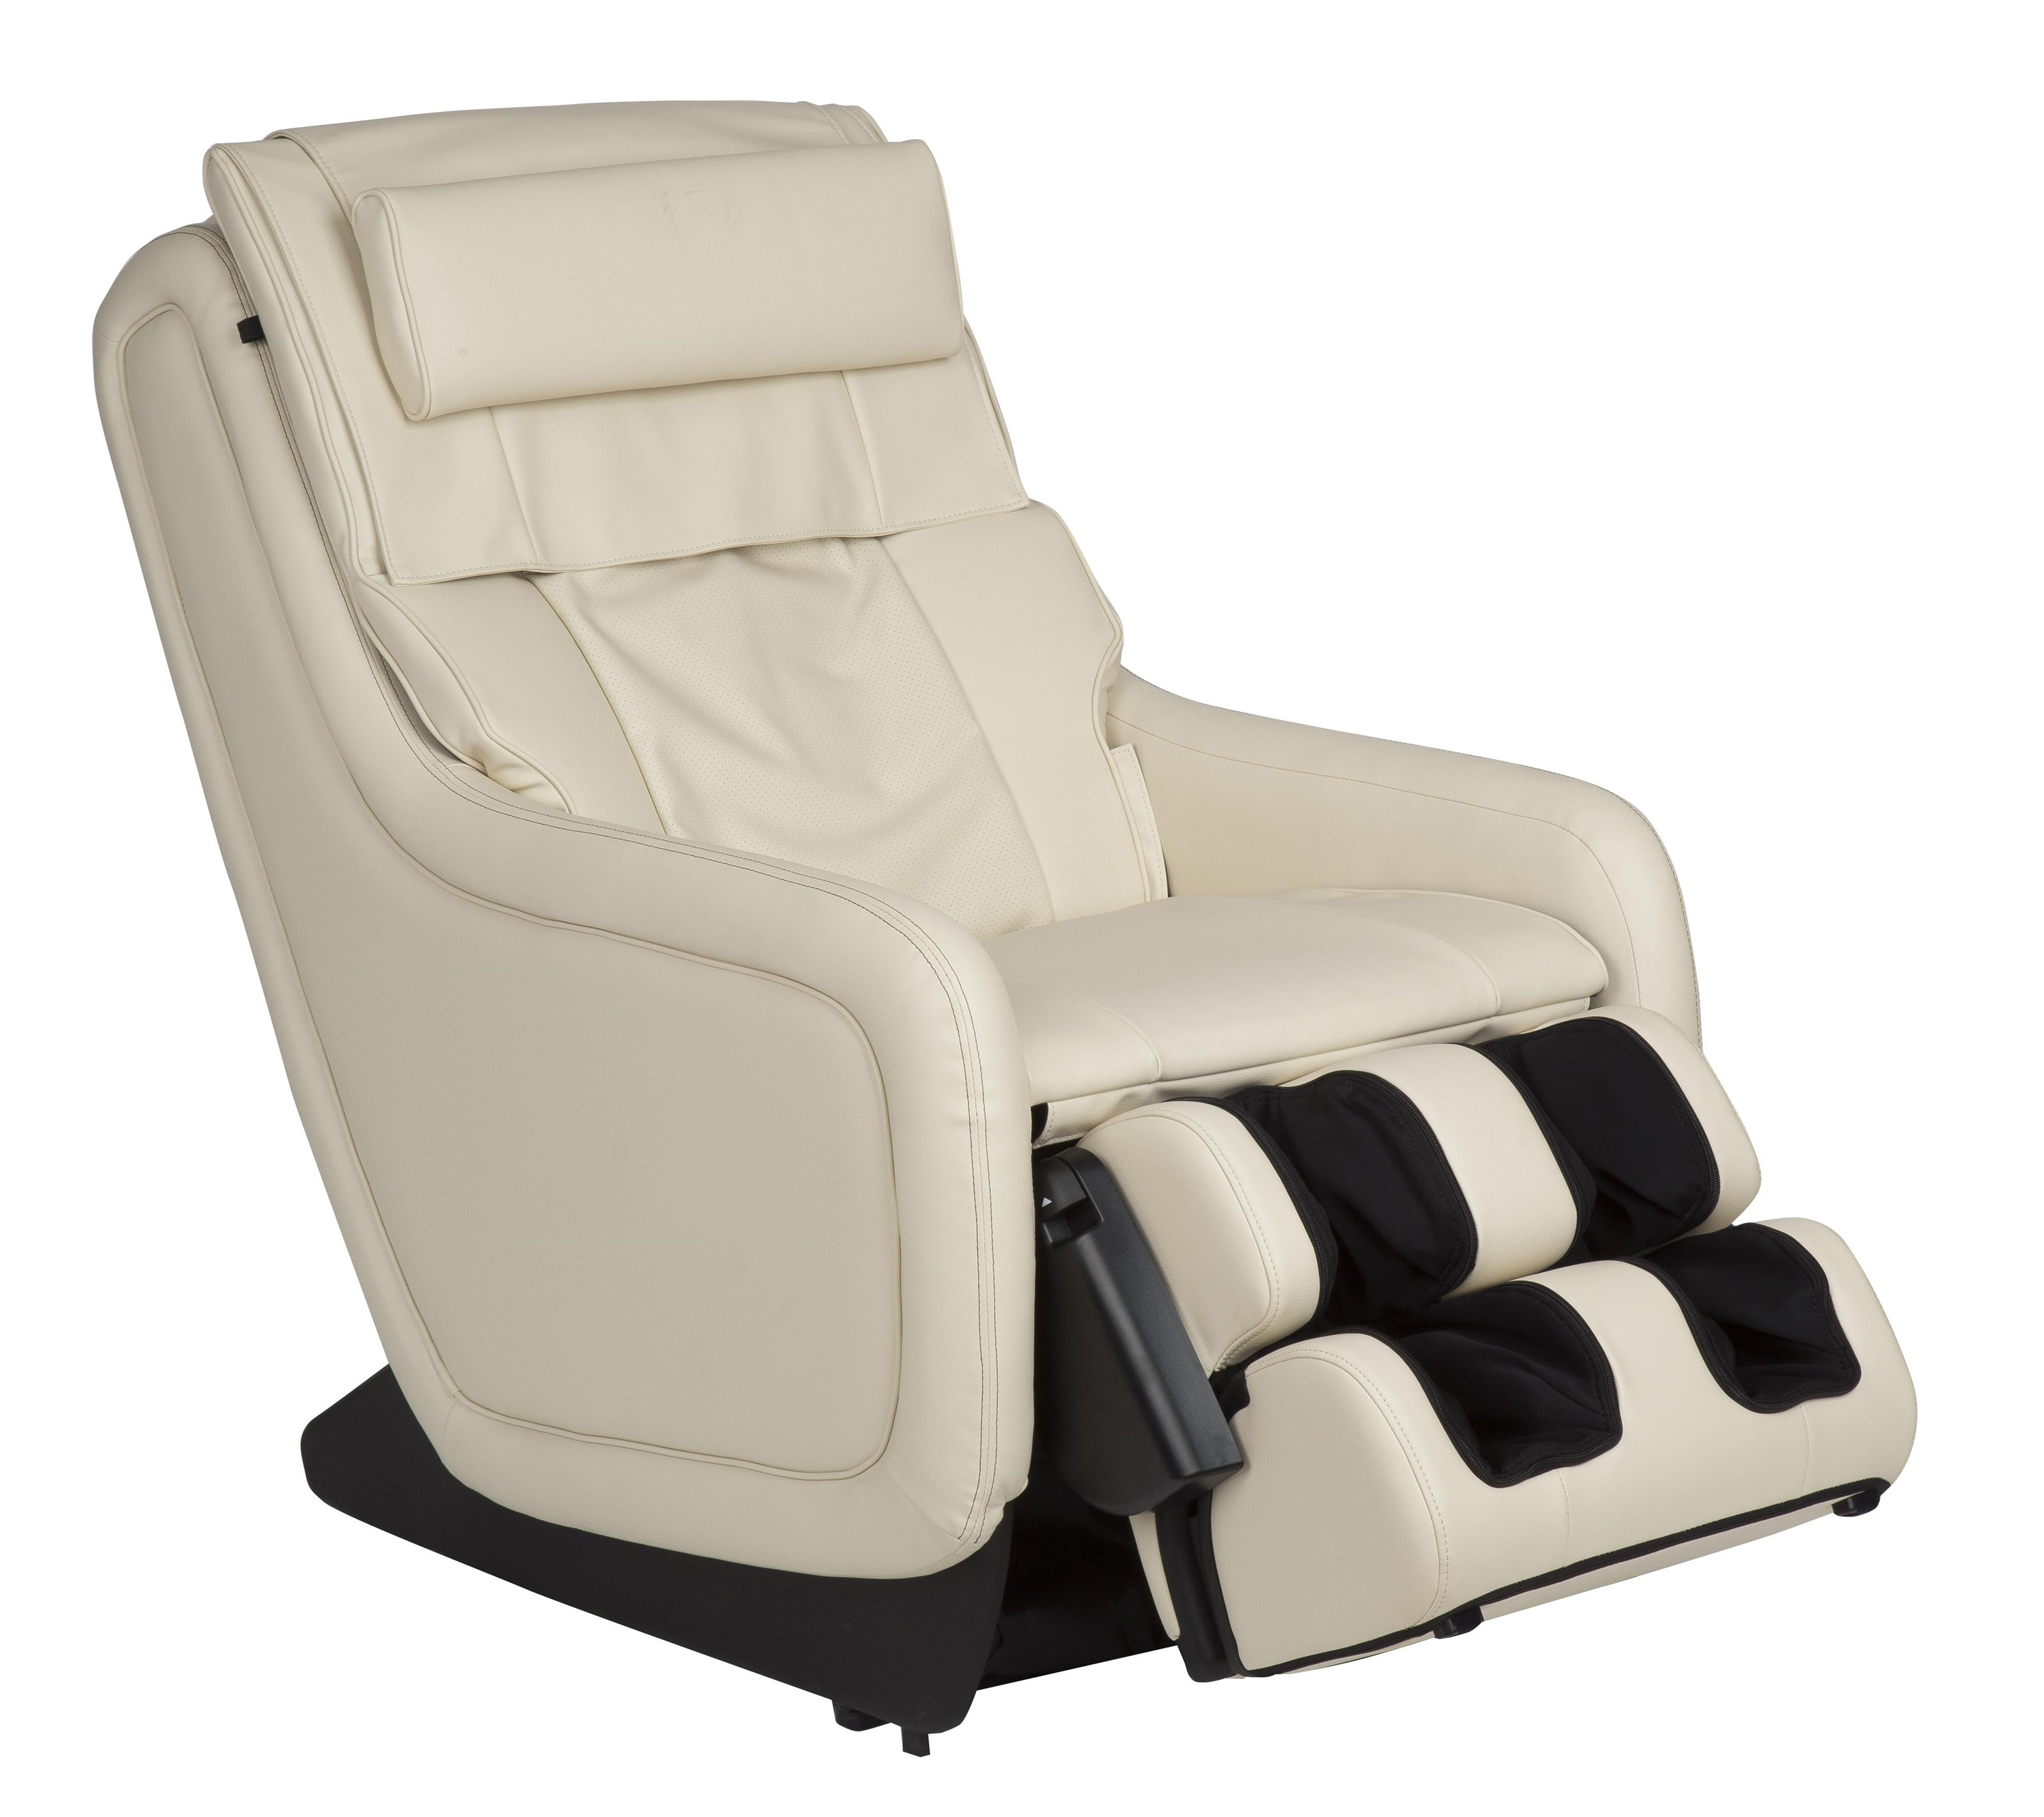 Immersion Seating Massage Chair by Human Touch at HomeWorld Furniture